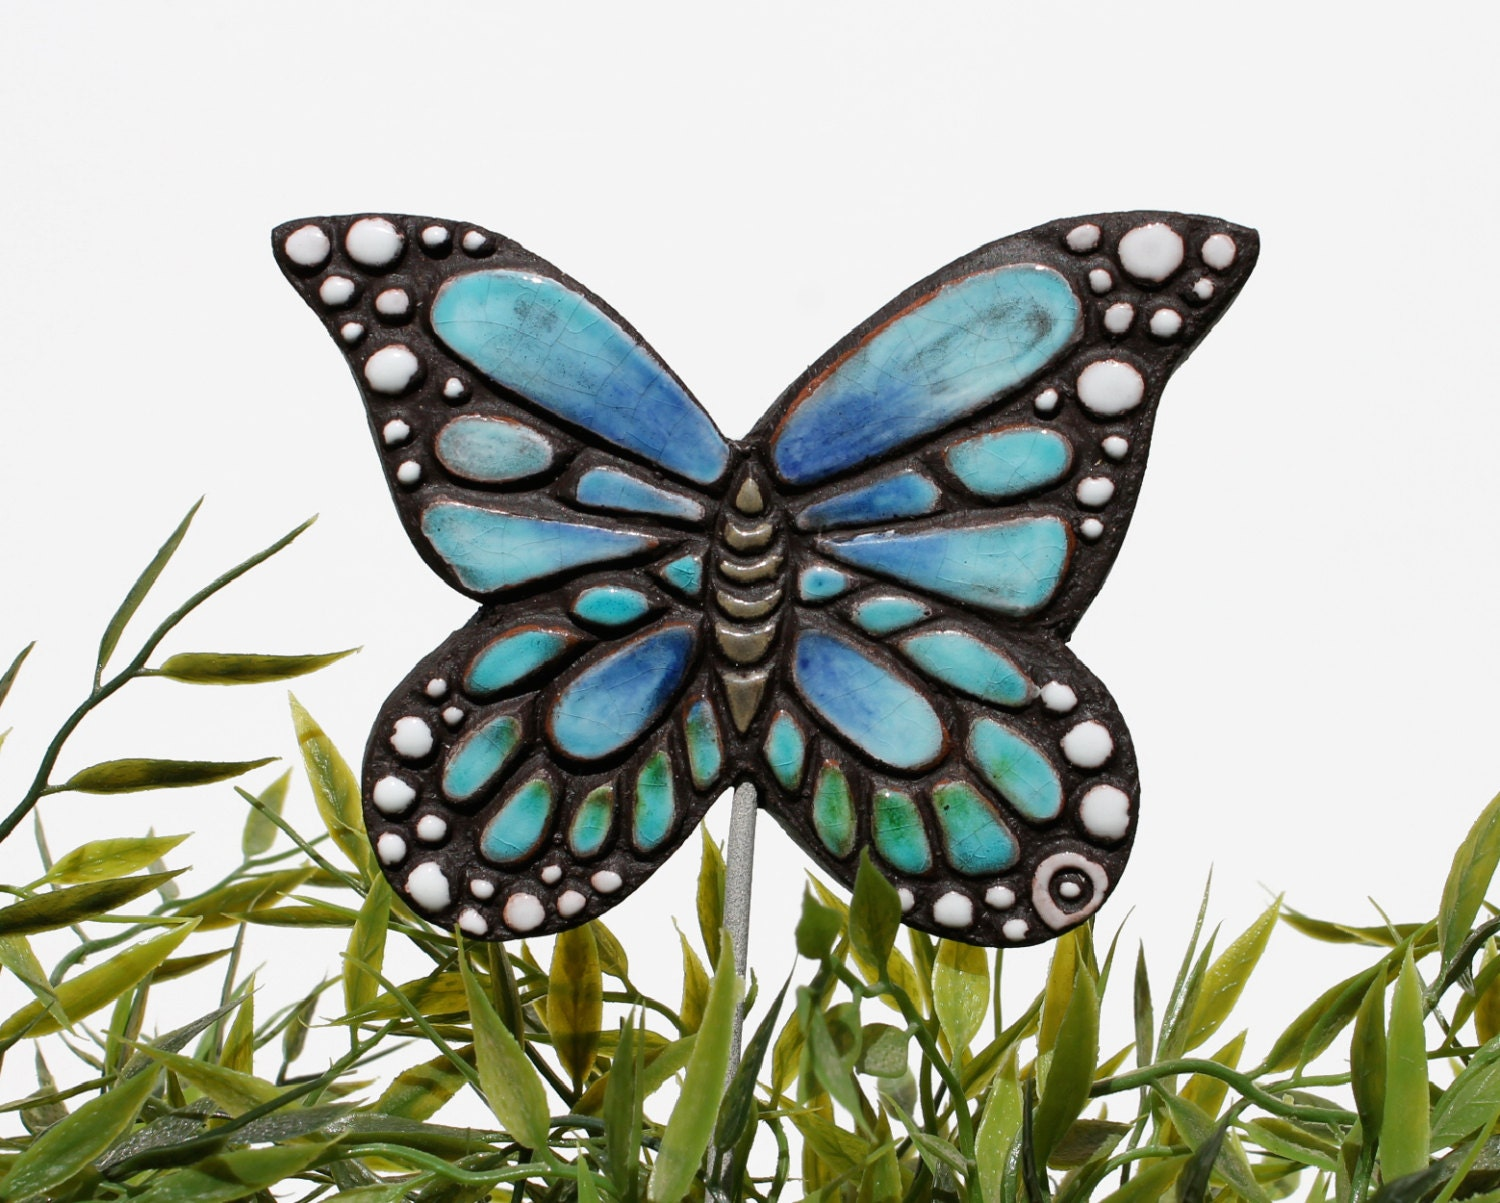 Butterfly garden art plant stake garden decor butterfly for Outdoor butterfly decor